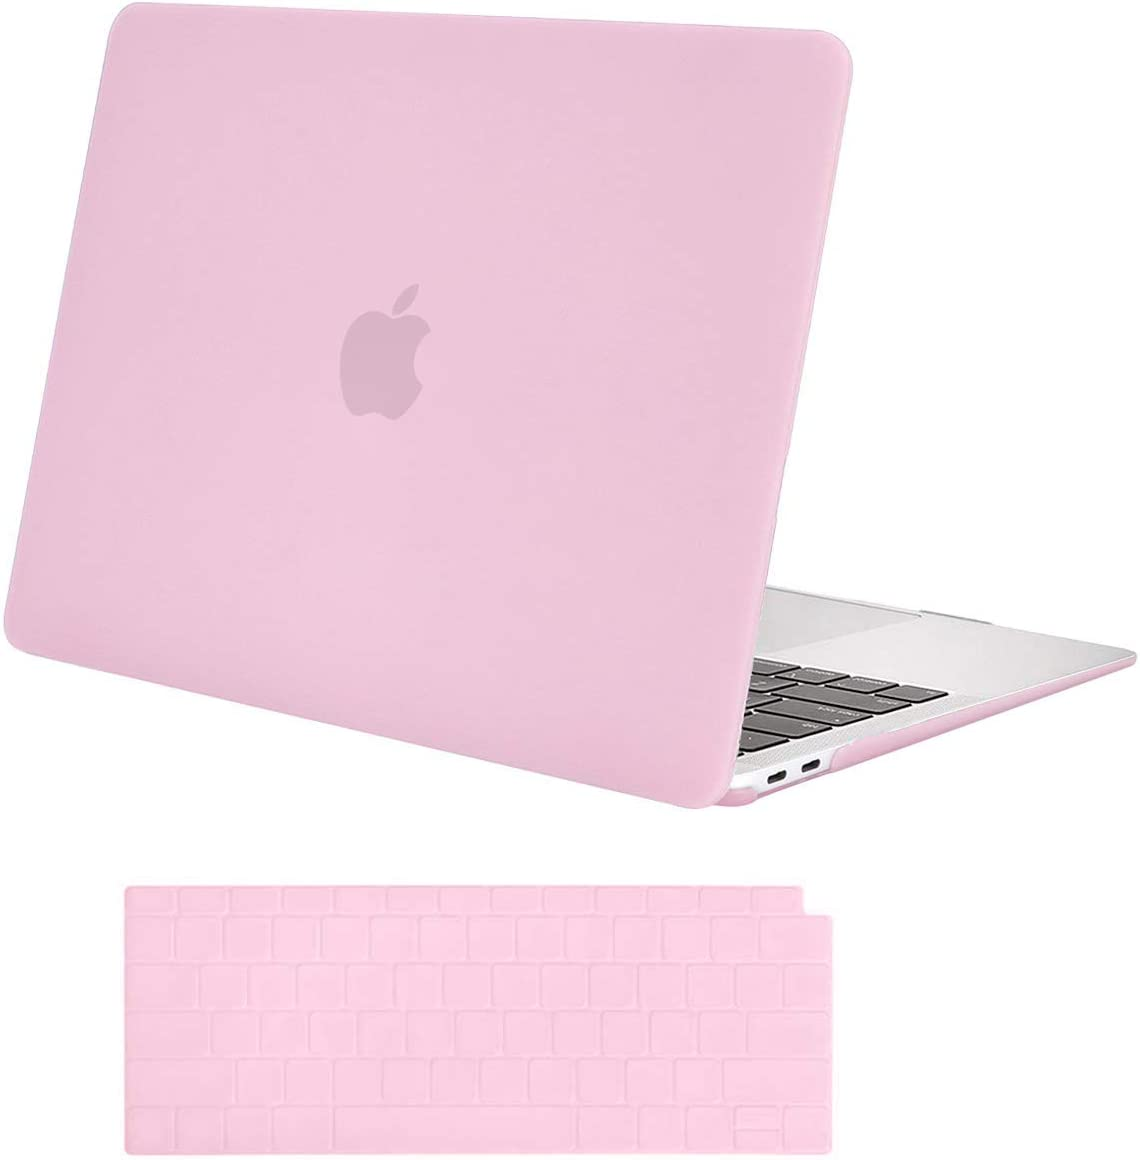 MOSISO MacBook Air 13 inch Case 2020 2019 2018 Release A2179 A1932 with Retina Display, Plastic Hard Shell Case & Keyboard Cover Only Compatible with MacBook Air 13 with Touch ID, Clear Pink